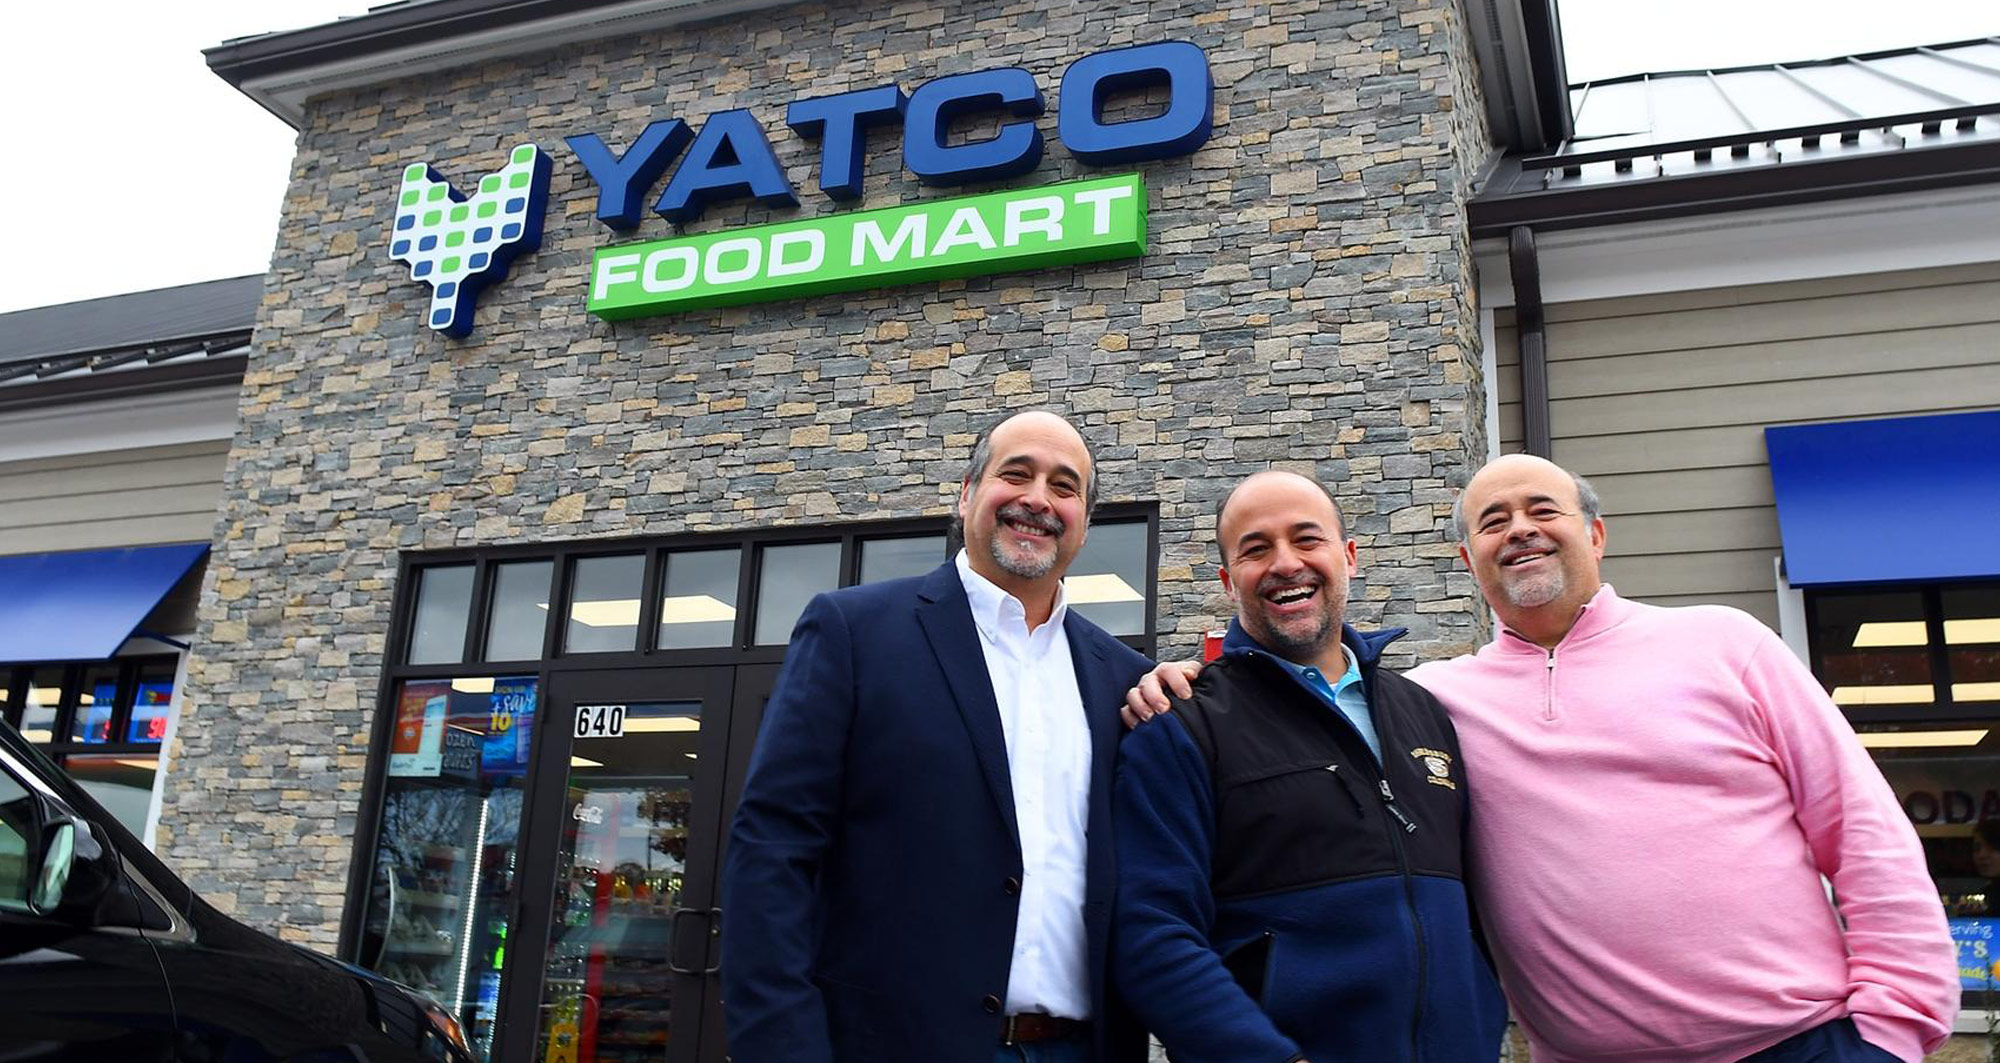 Yatco food mart owners in front of Yatco Food Mart store, Massachusetts food mart, Massachusetts convenience store